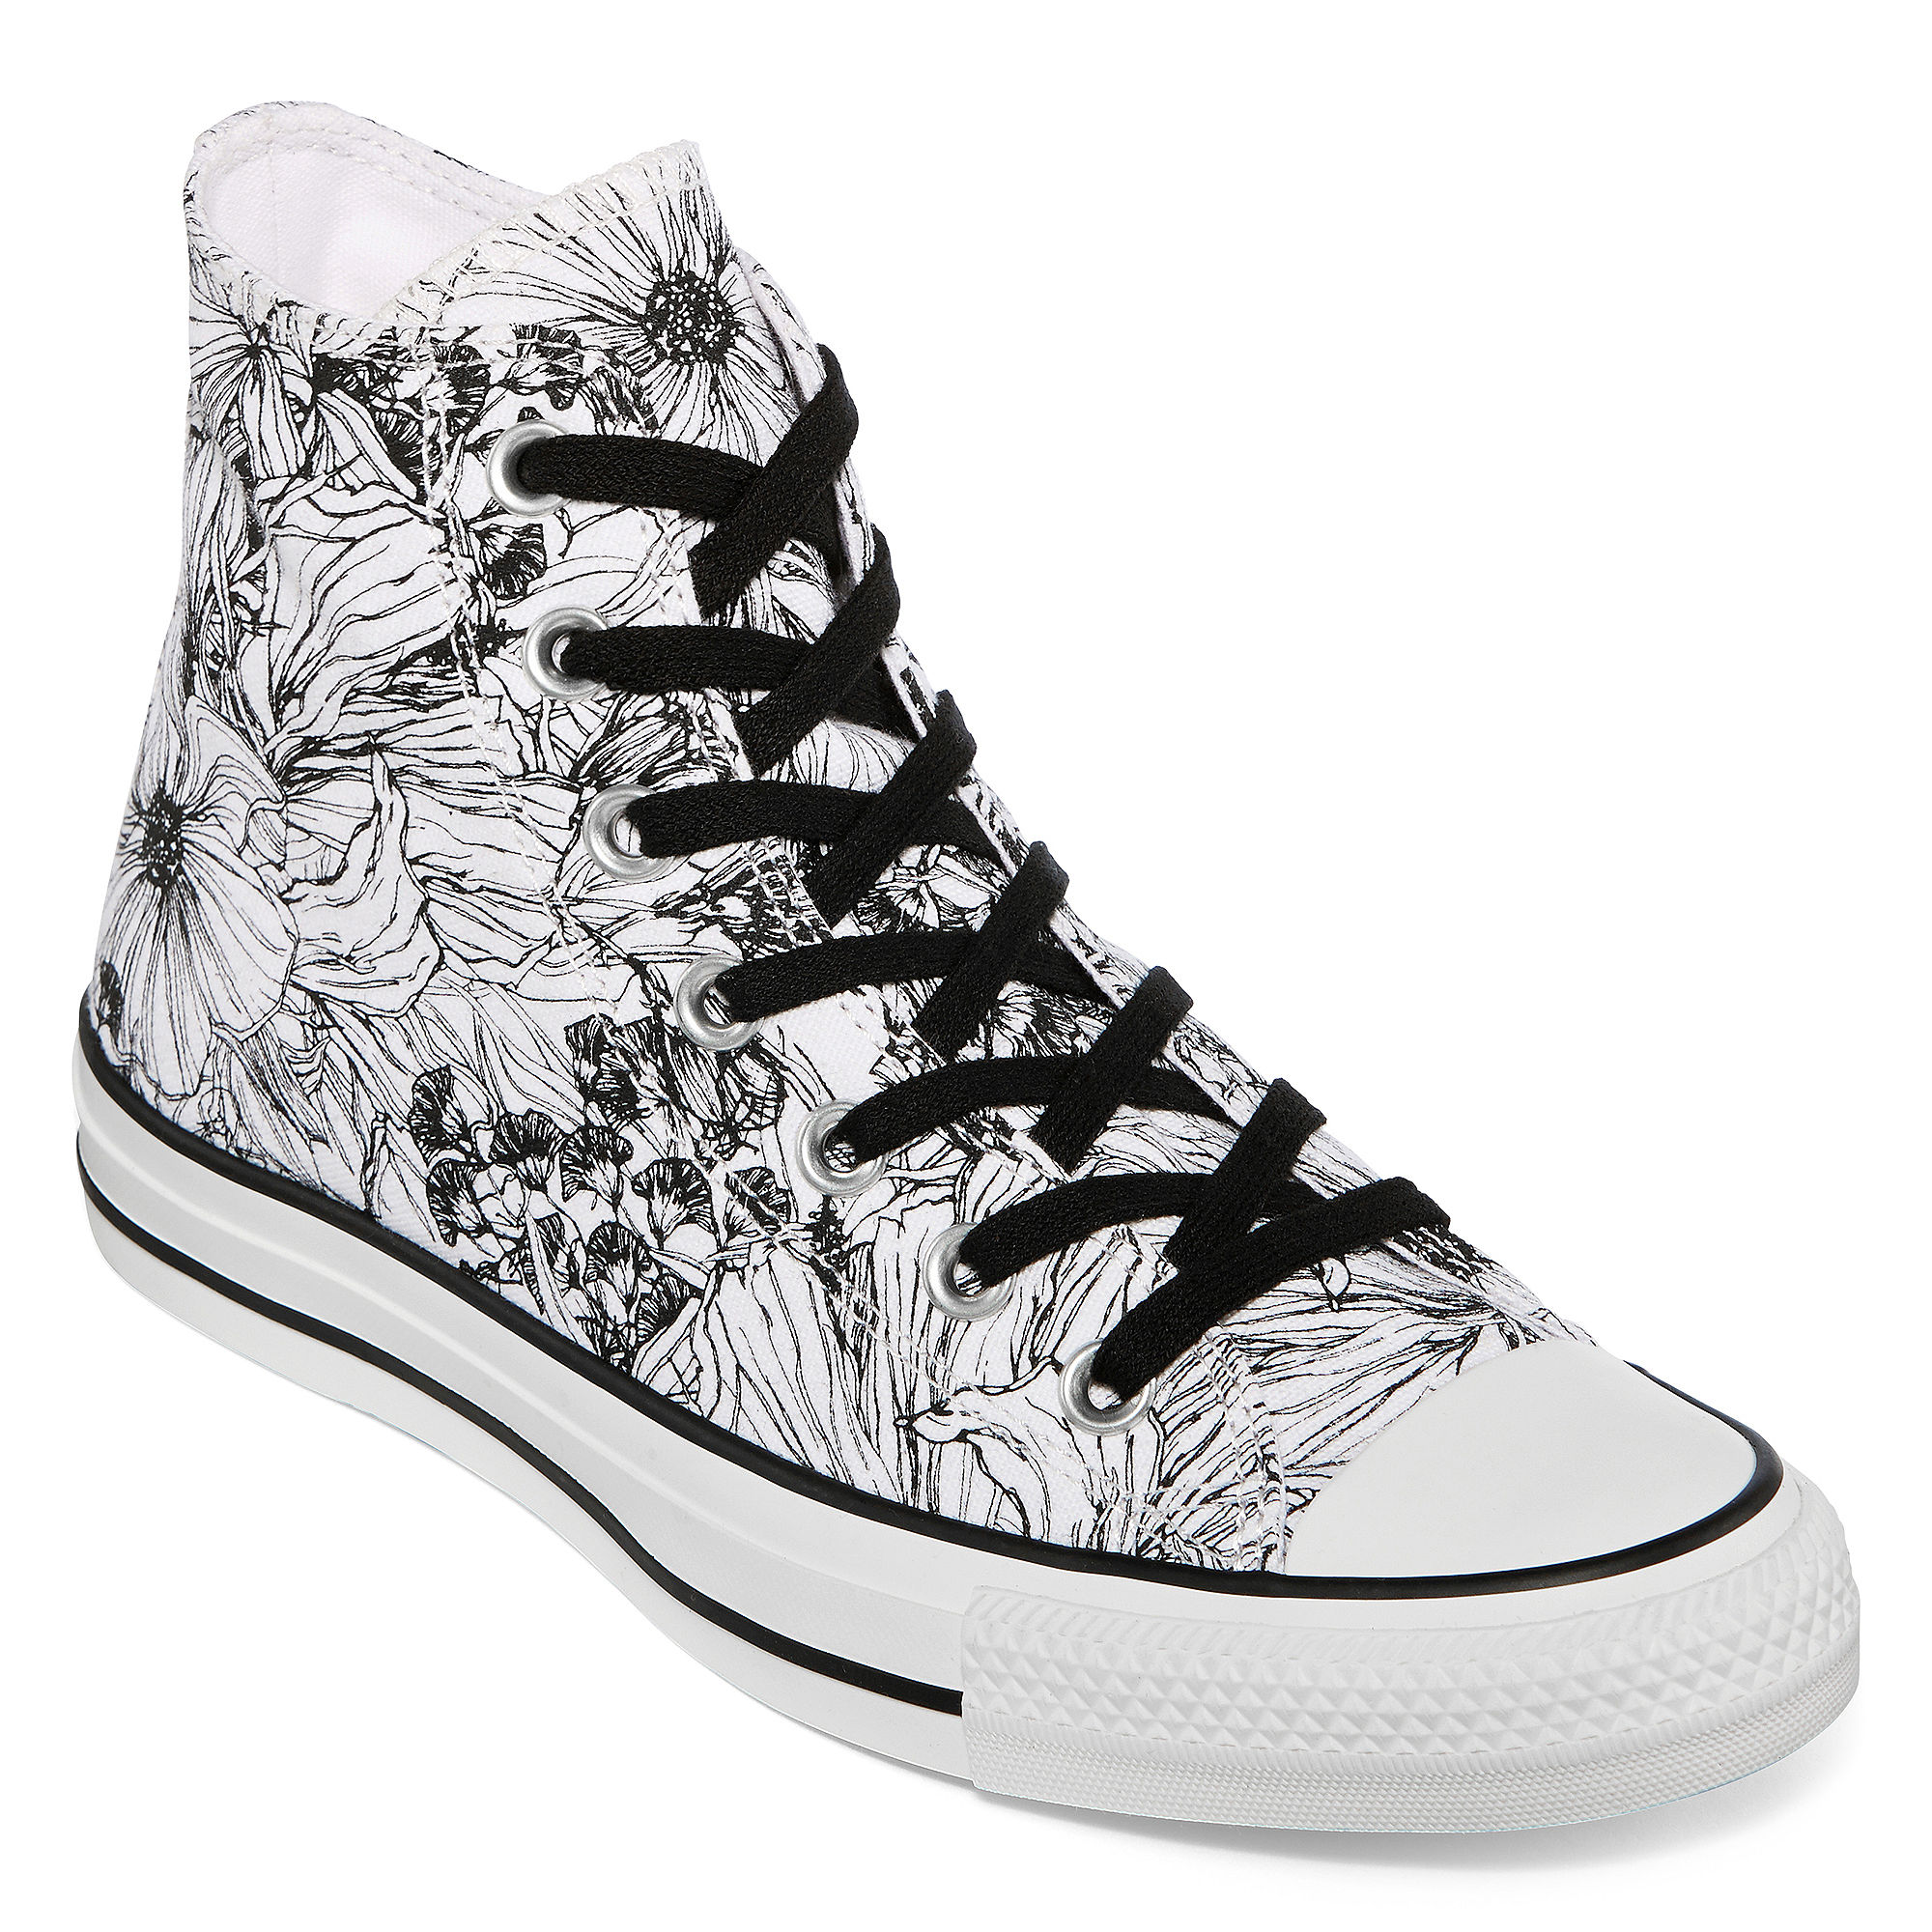 7c60a72a2e772b UPC 886955780941. ZOOM. UPC 886955780941 has following Product Name  Variations  Converse All Star Hi Top Floral Print Women s 8  Converse  Women s Chuck ...